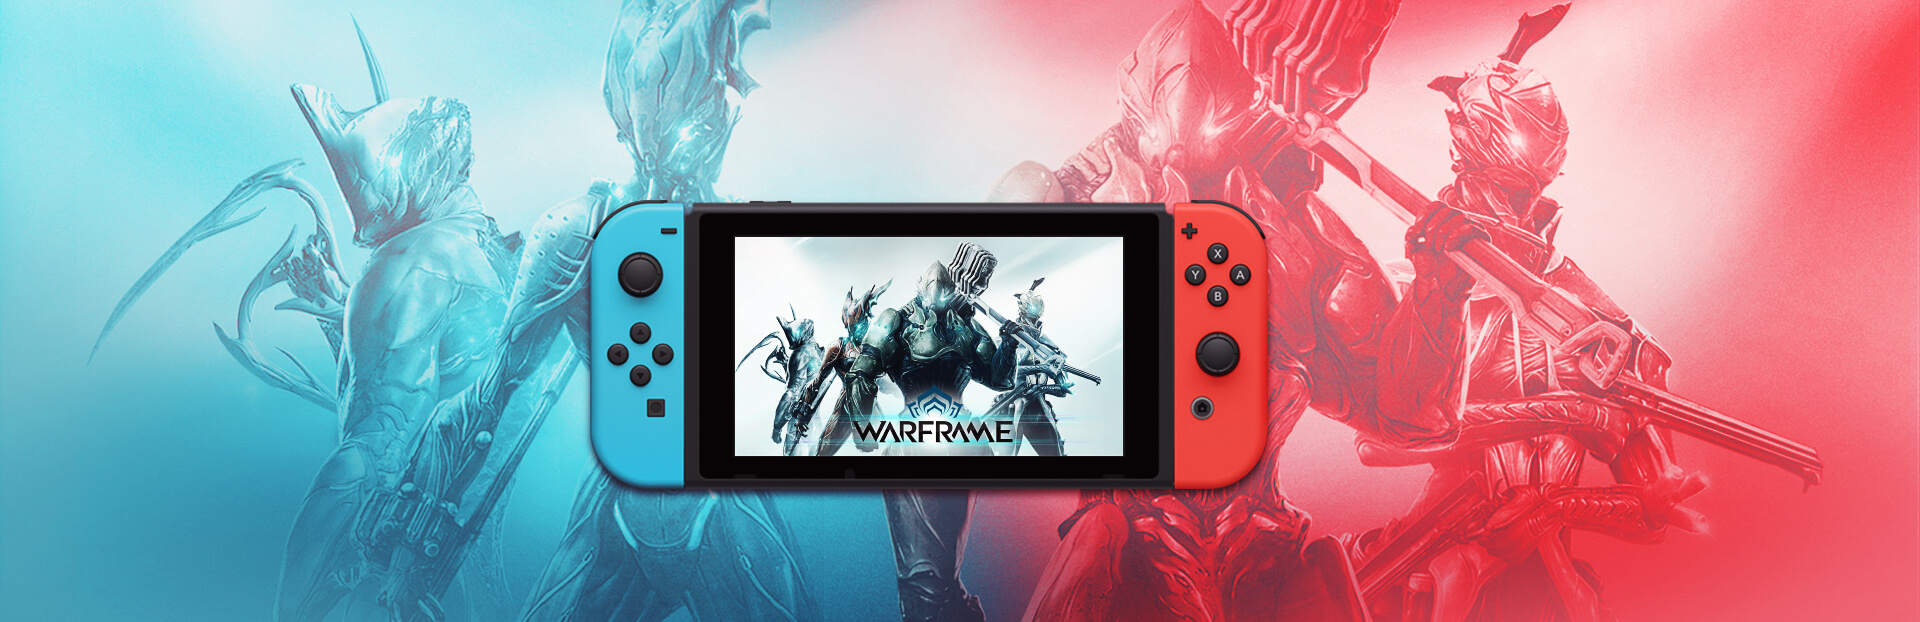 Warframe is live now on Switch, along with account migration screenshot